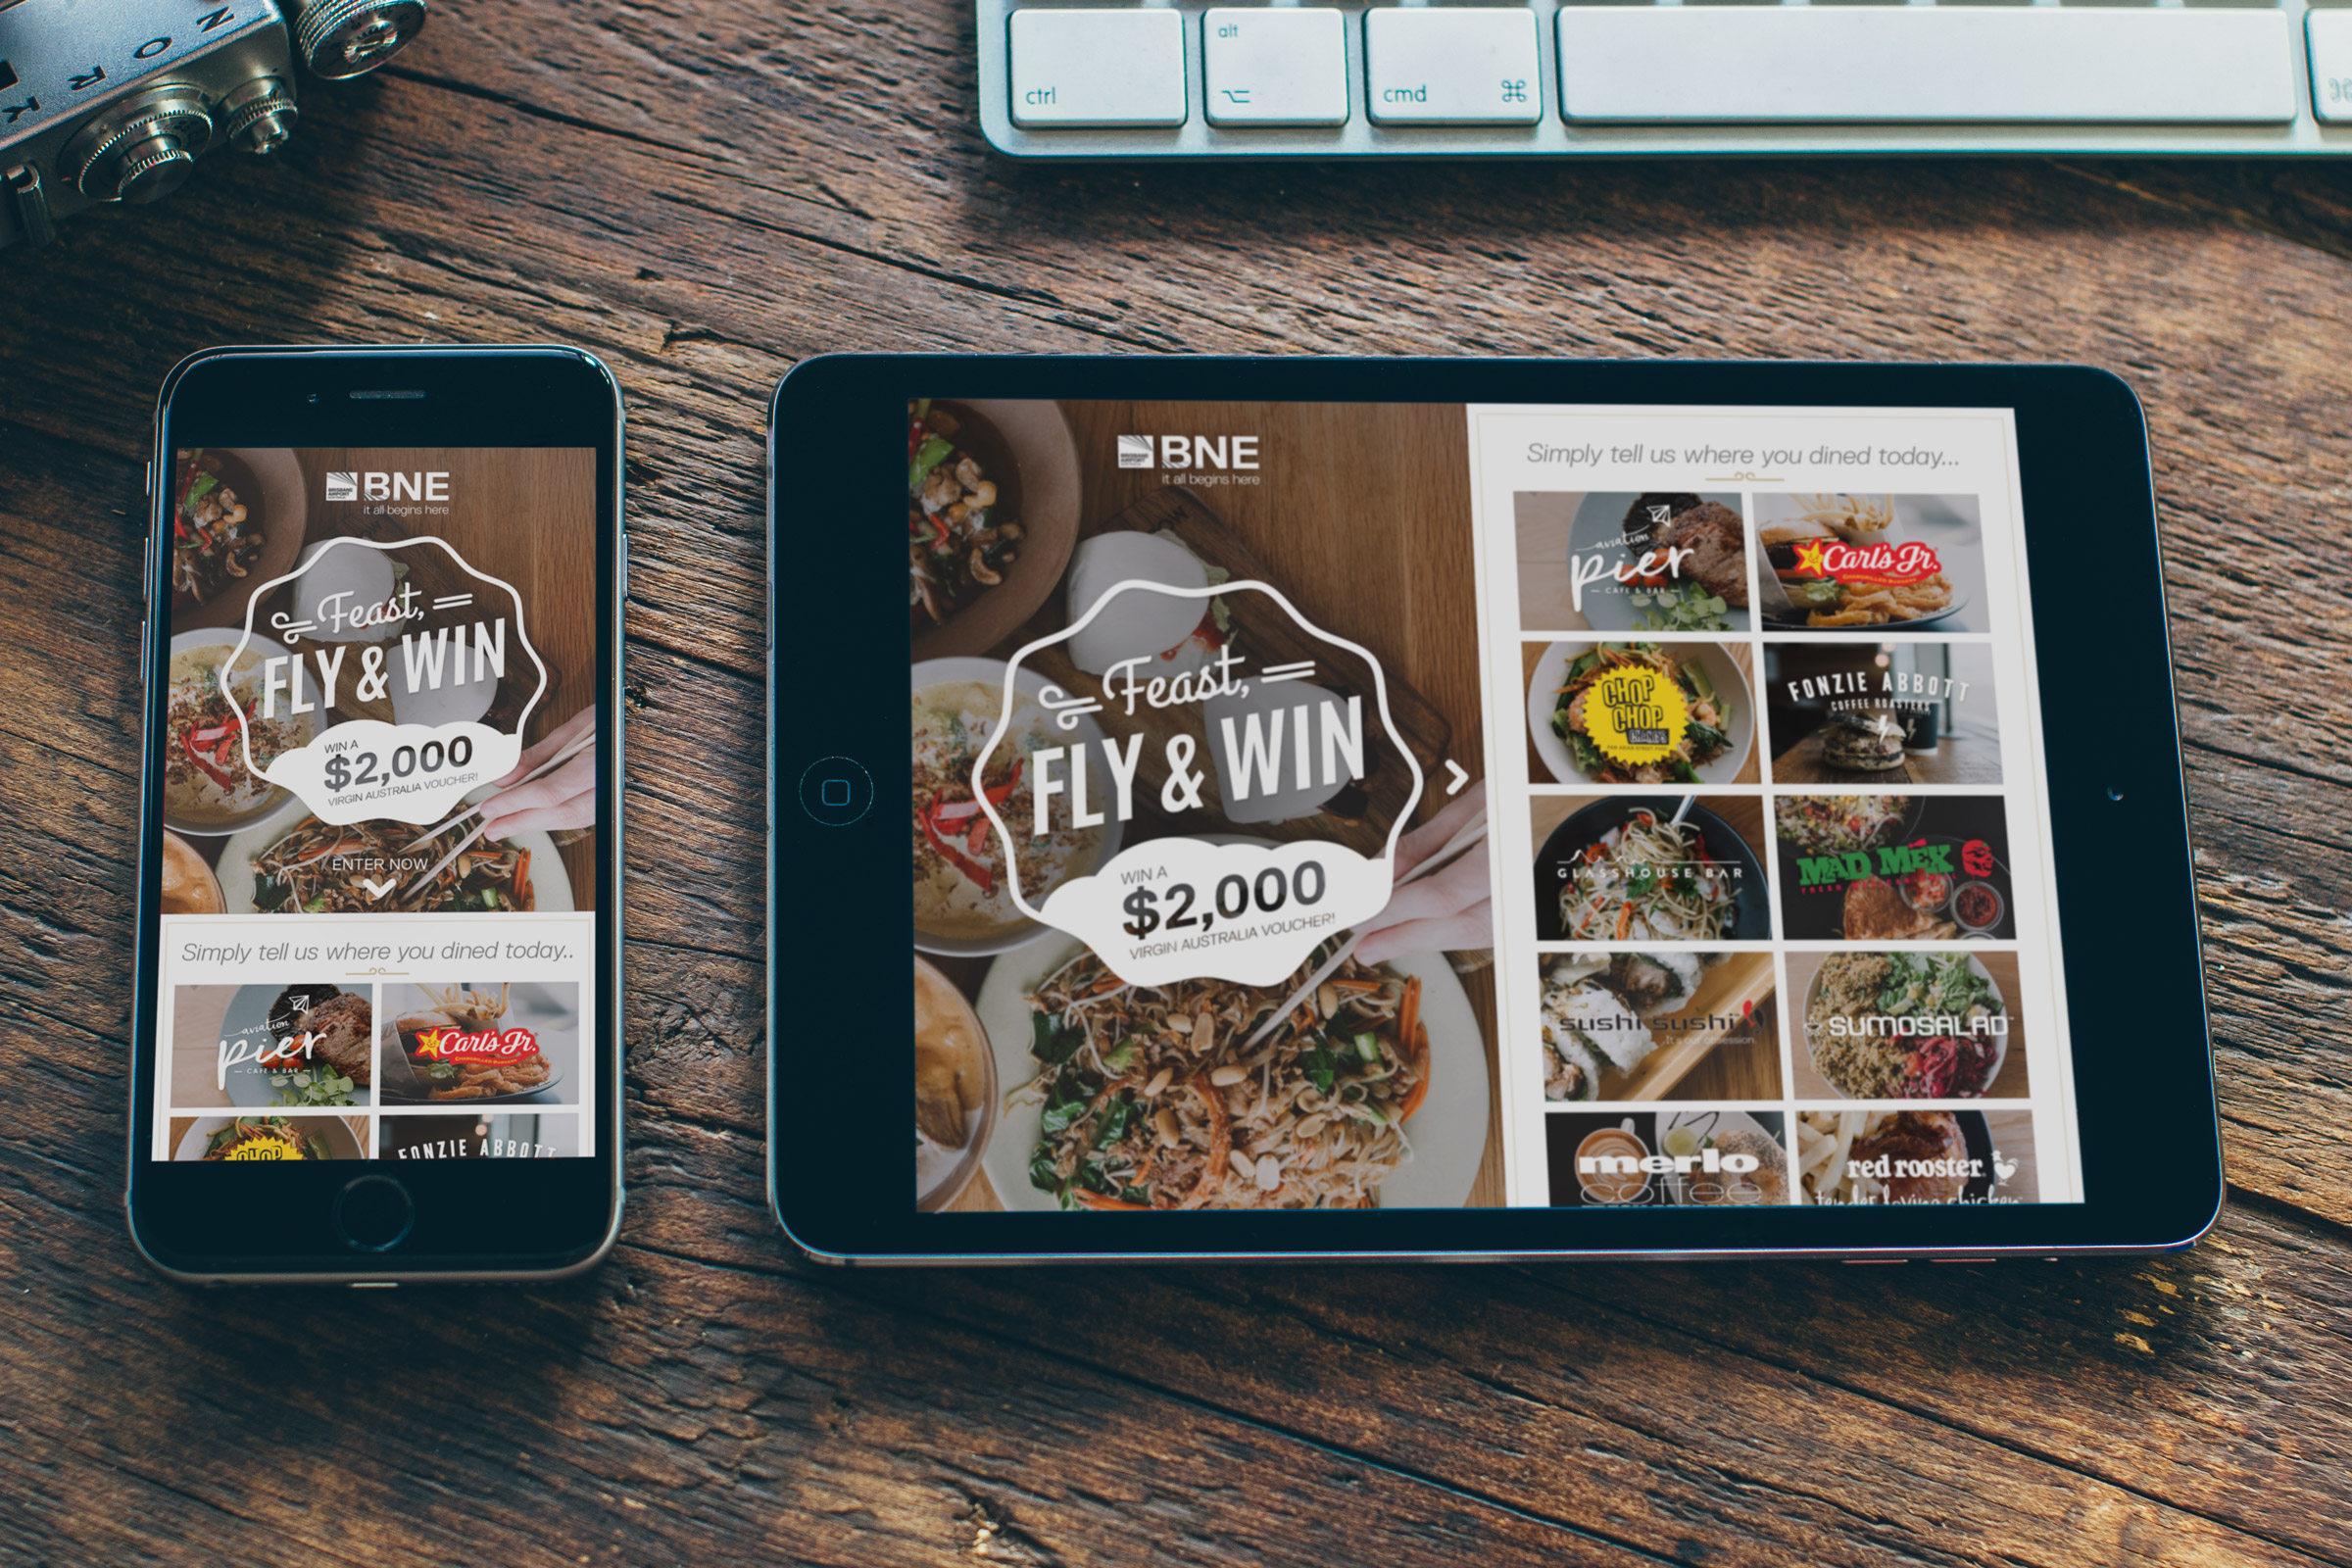 Brisbane Airport Corporation - Feast, Fly & Win